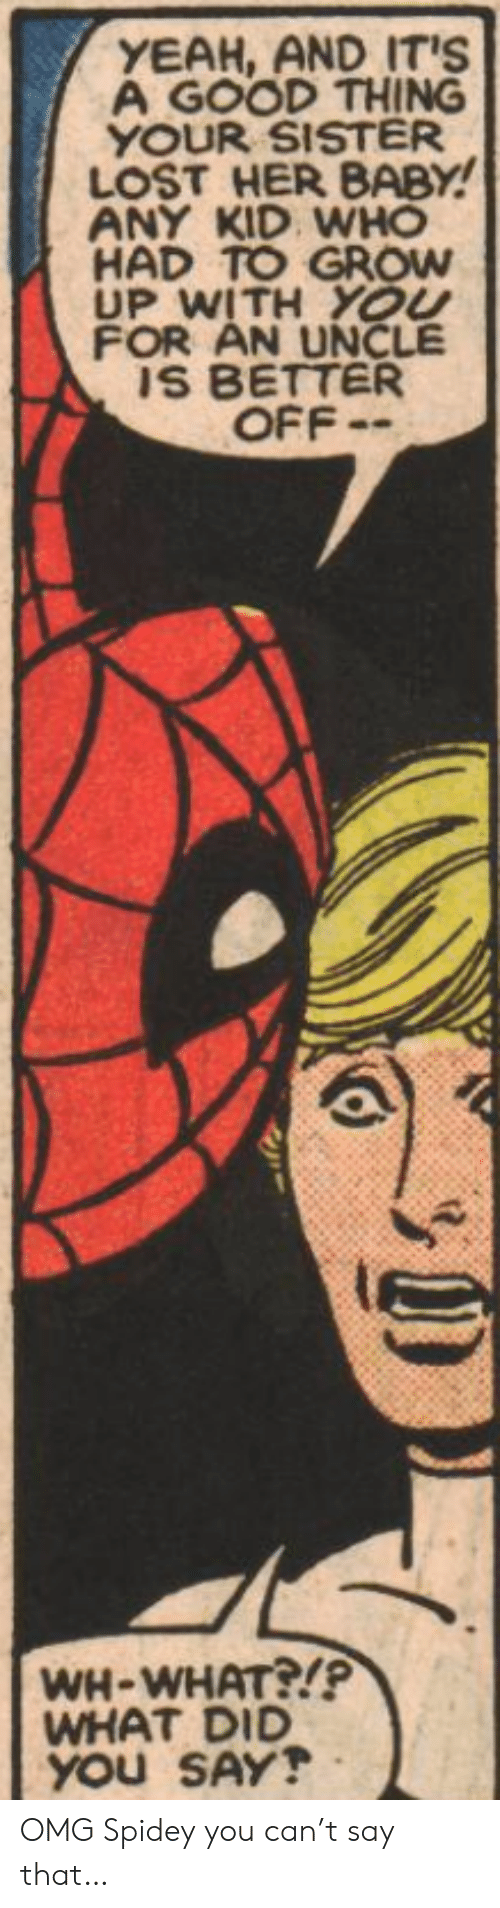 Spidey: YEAH, AND IT'S  A GOOD THING  YOUR SISTER  LOST HER BABY!  ANY KID WHO  HAD TO GROW  UP WITH YOU  FOR AN UNCLE  IS BETTER  OFF-  WH-WHAT?!P  WHAT DID  YOU SAY! OMG Spidey you can't say that…